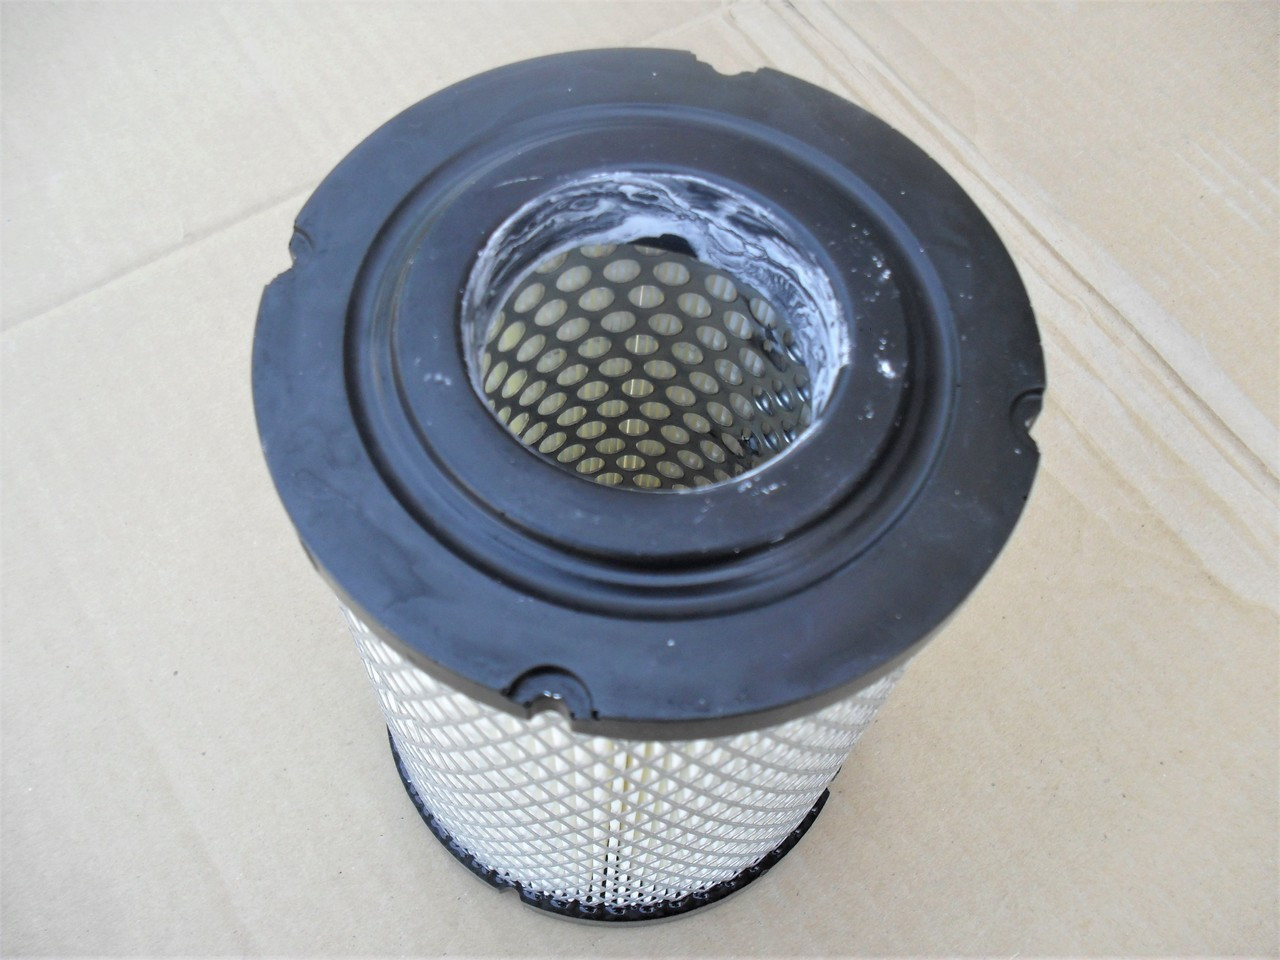 Air Filter for Ditchwitch J20 trencher 195352, 195-352